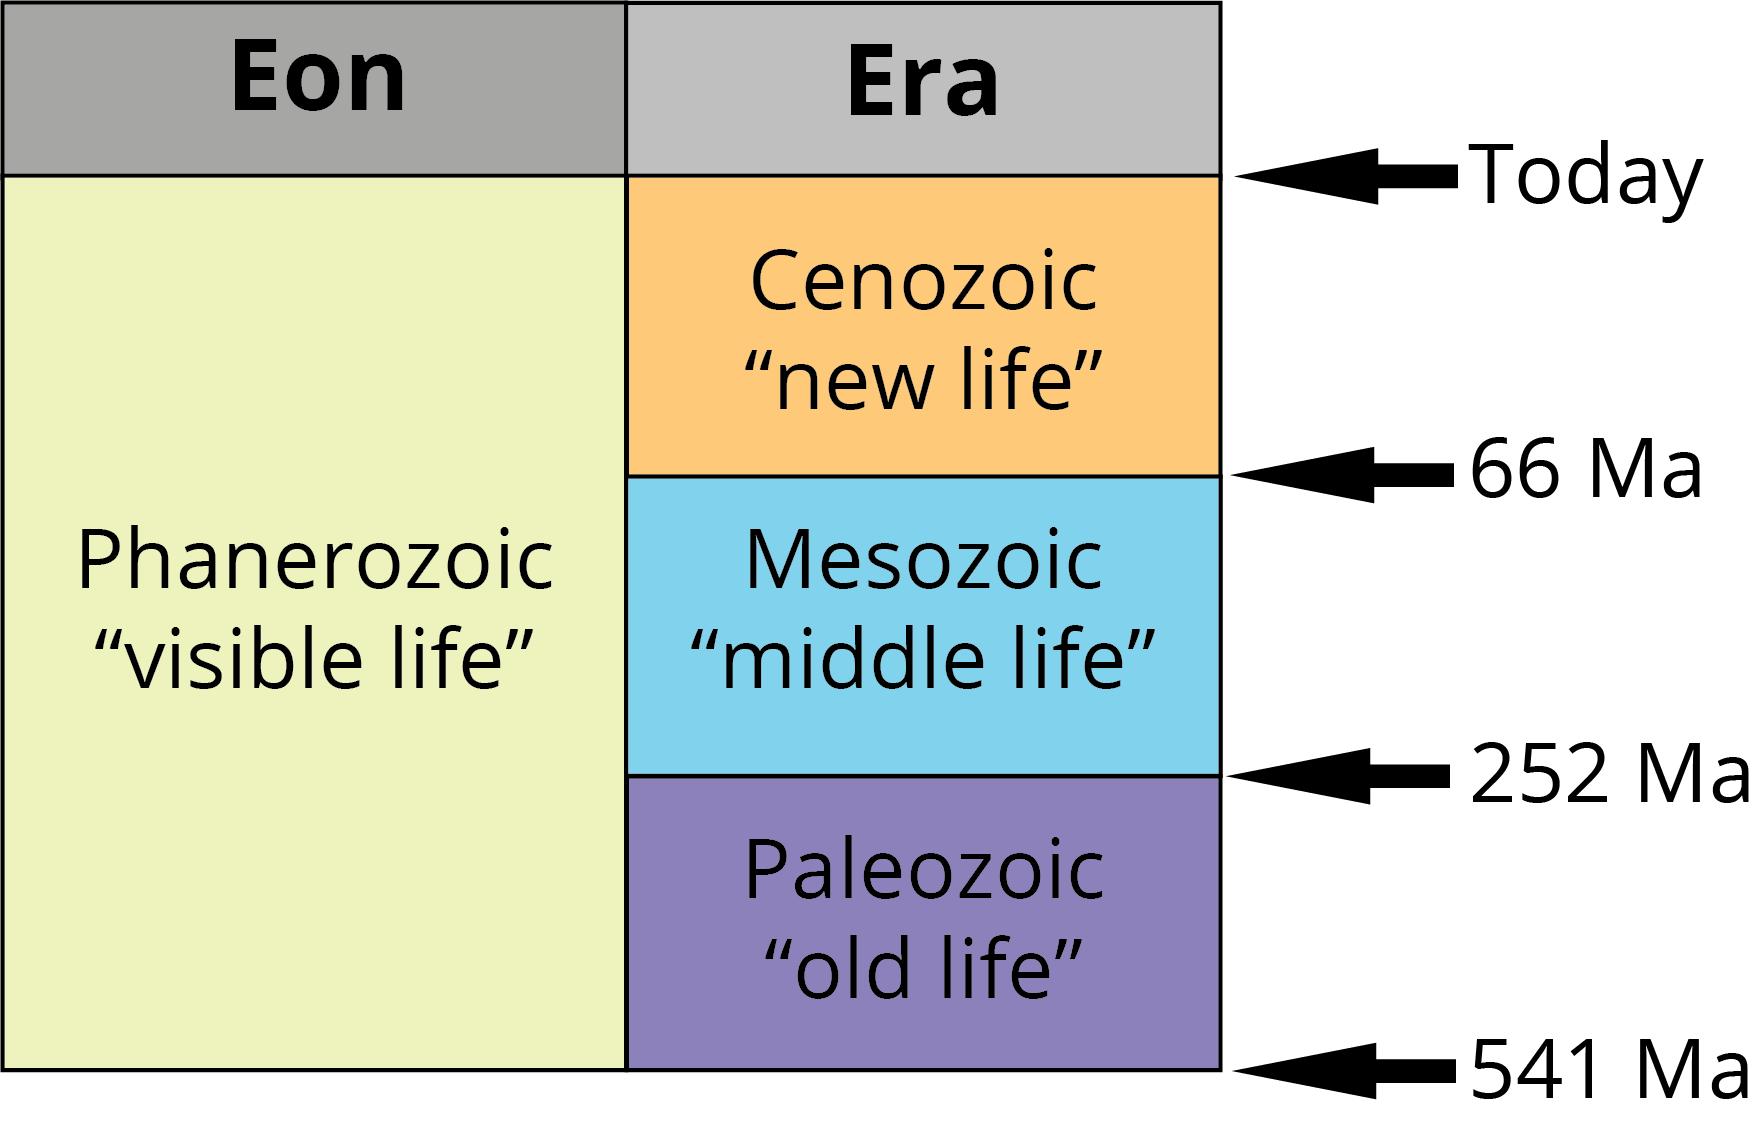 Eras of the Phanerozoic: Paleozoic, Mesozoic, Cenozoic